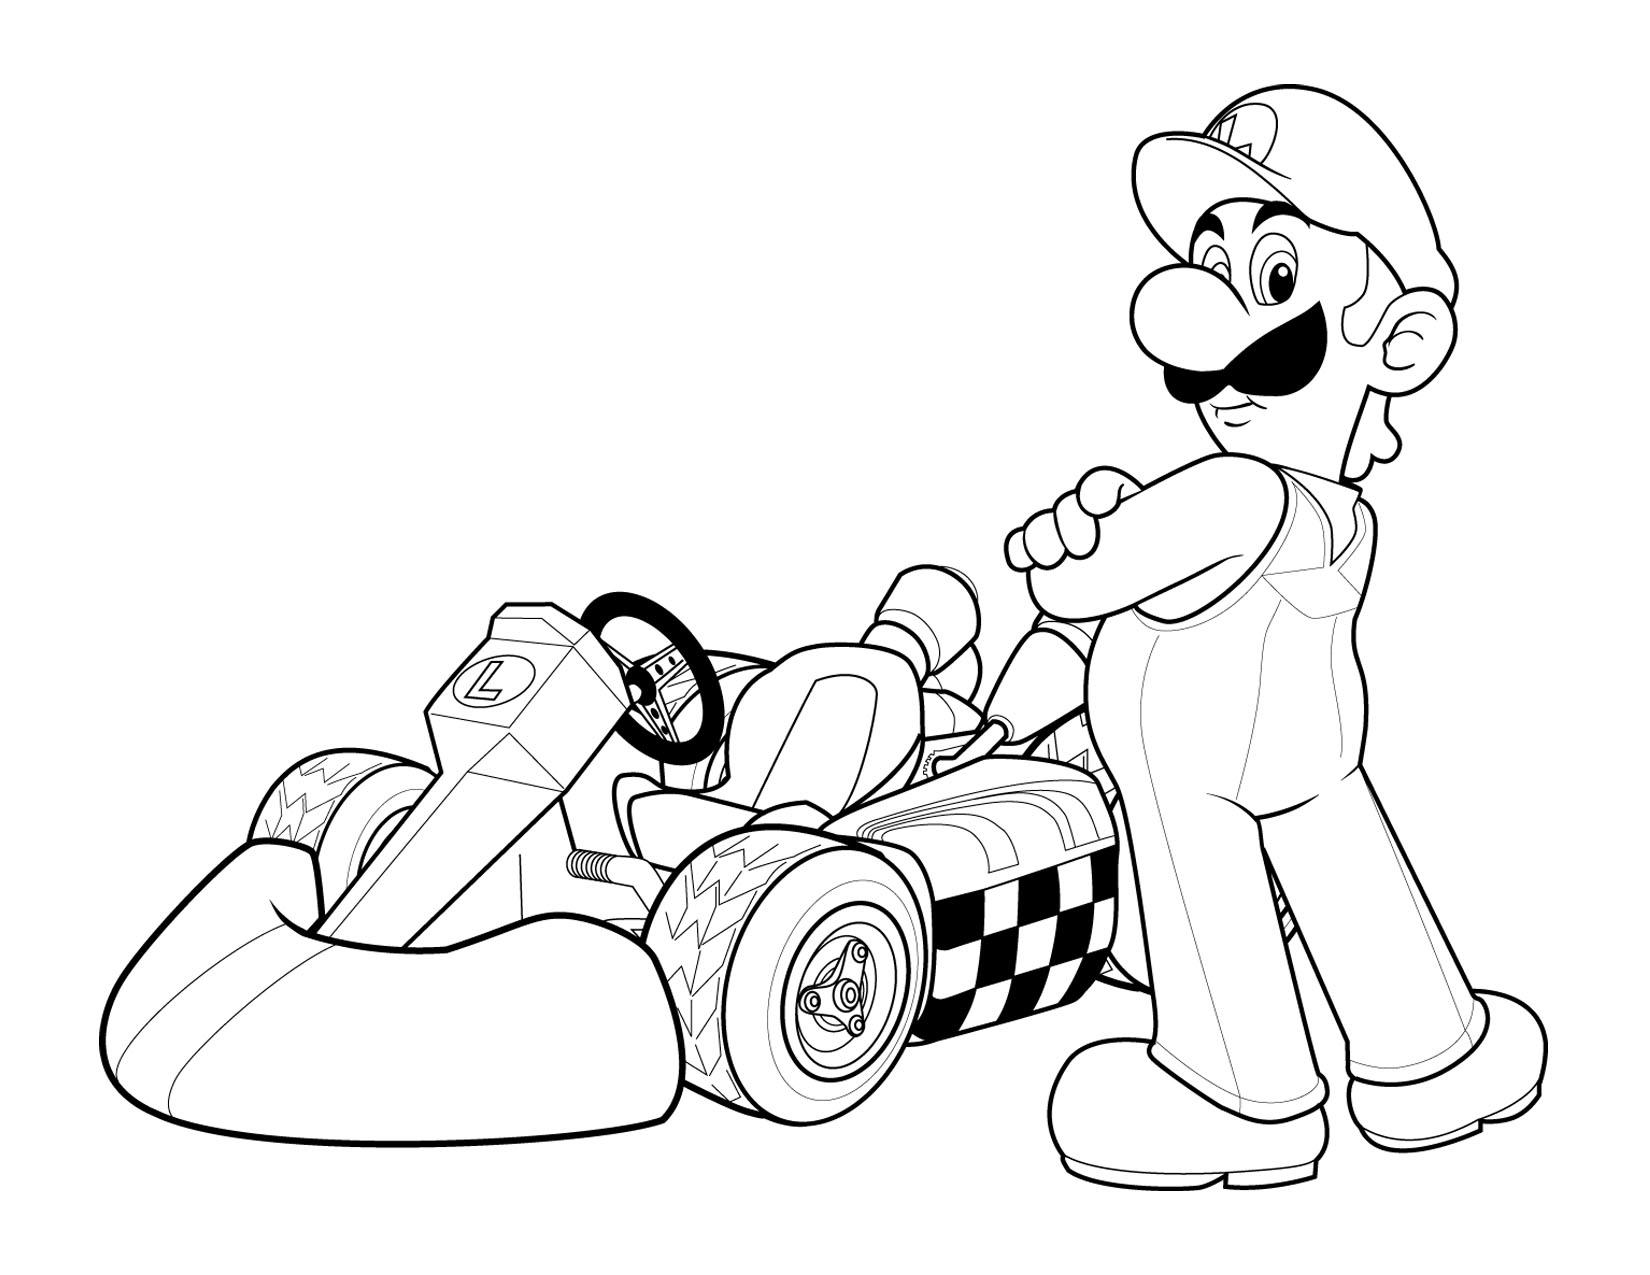 luigi coloring pages printable - photo#9